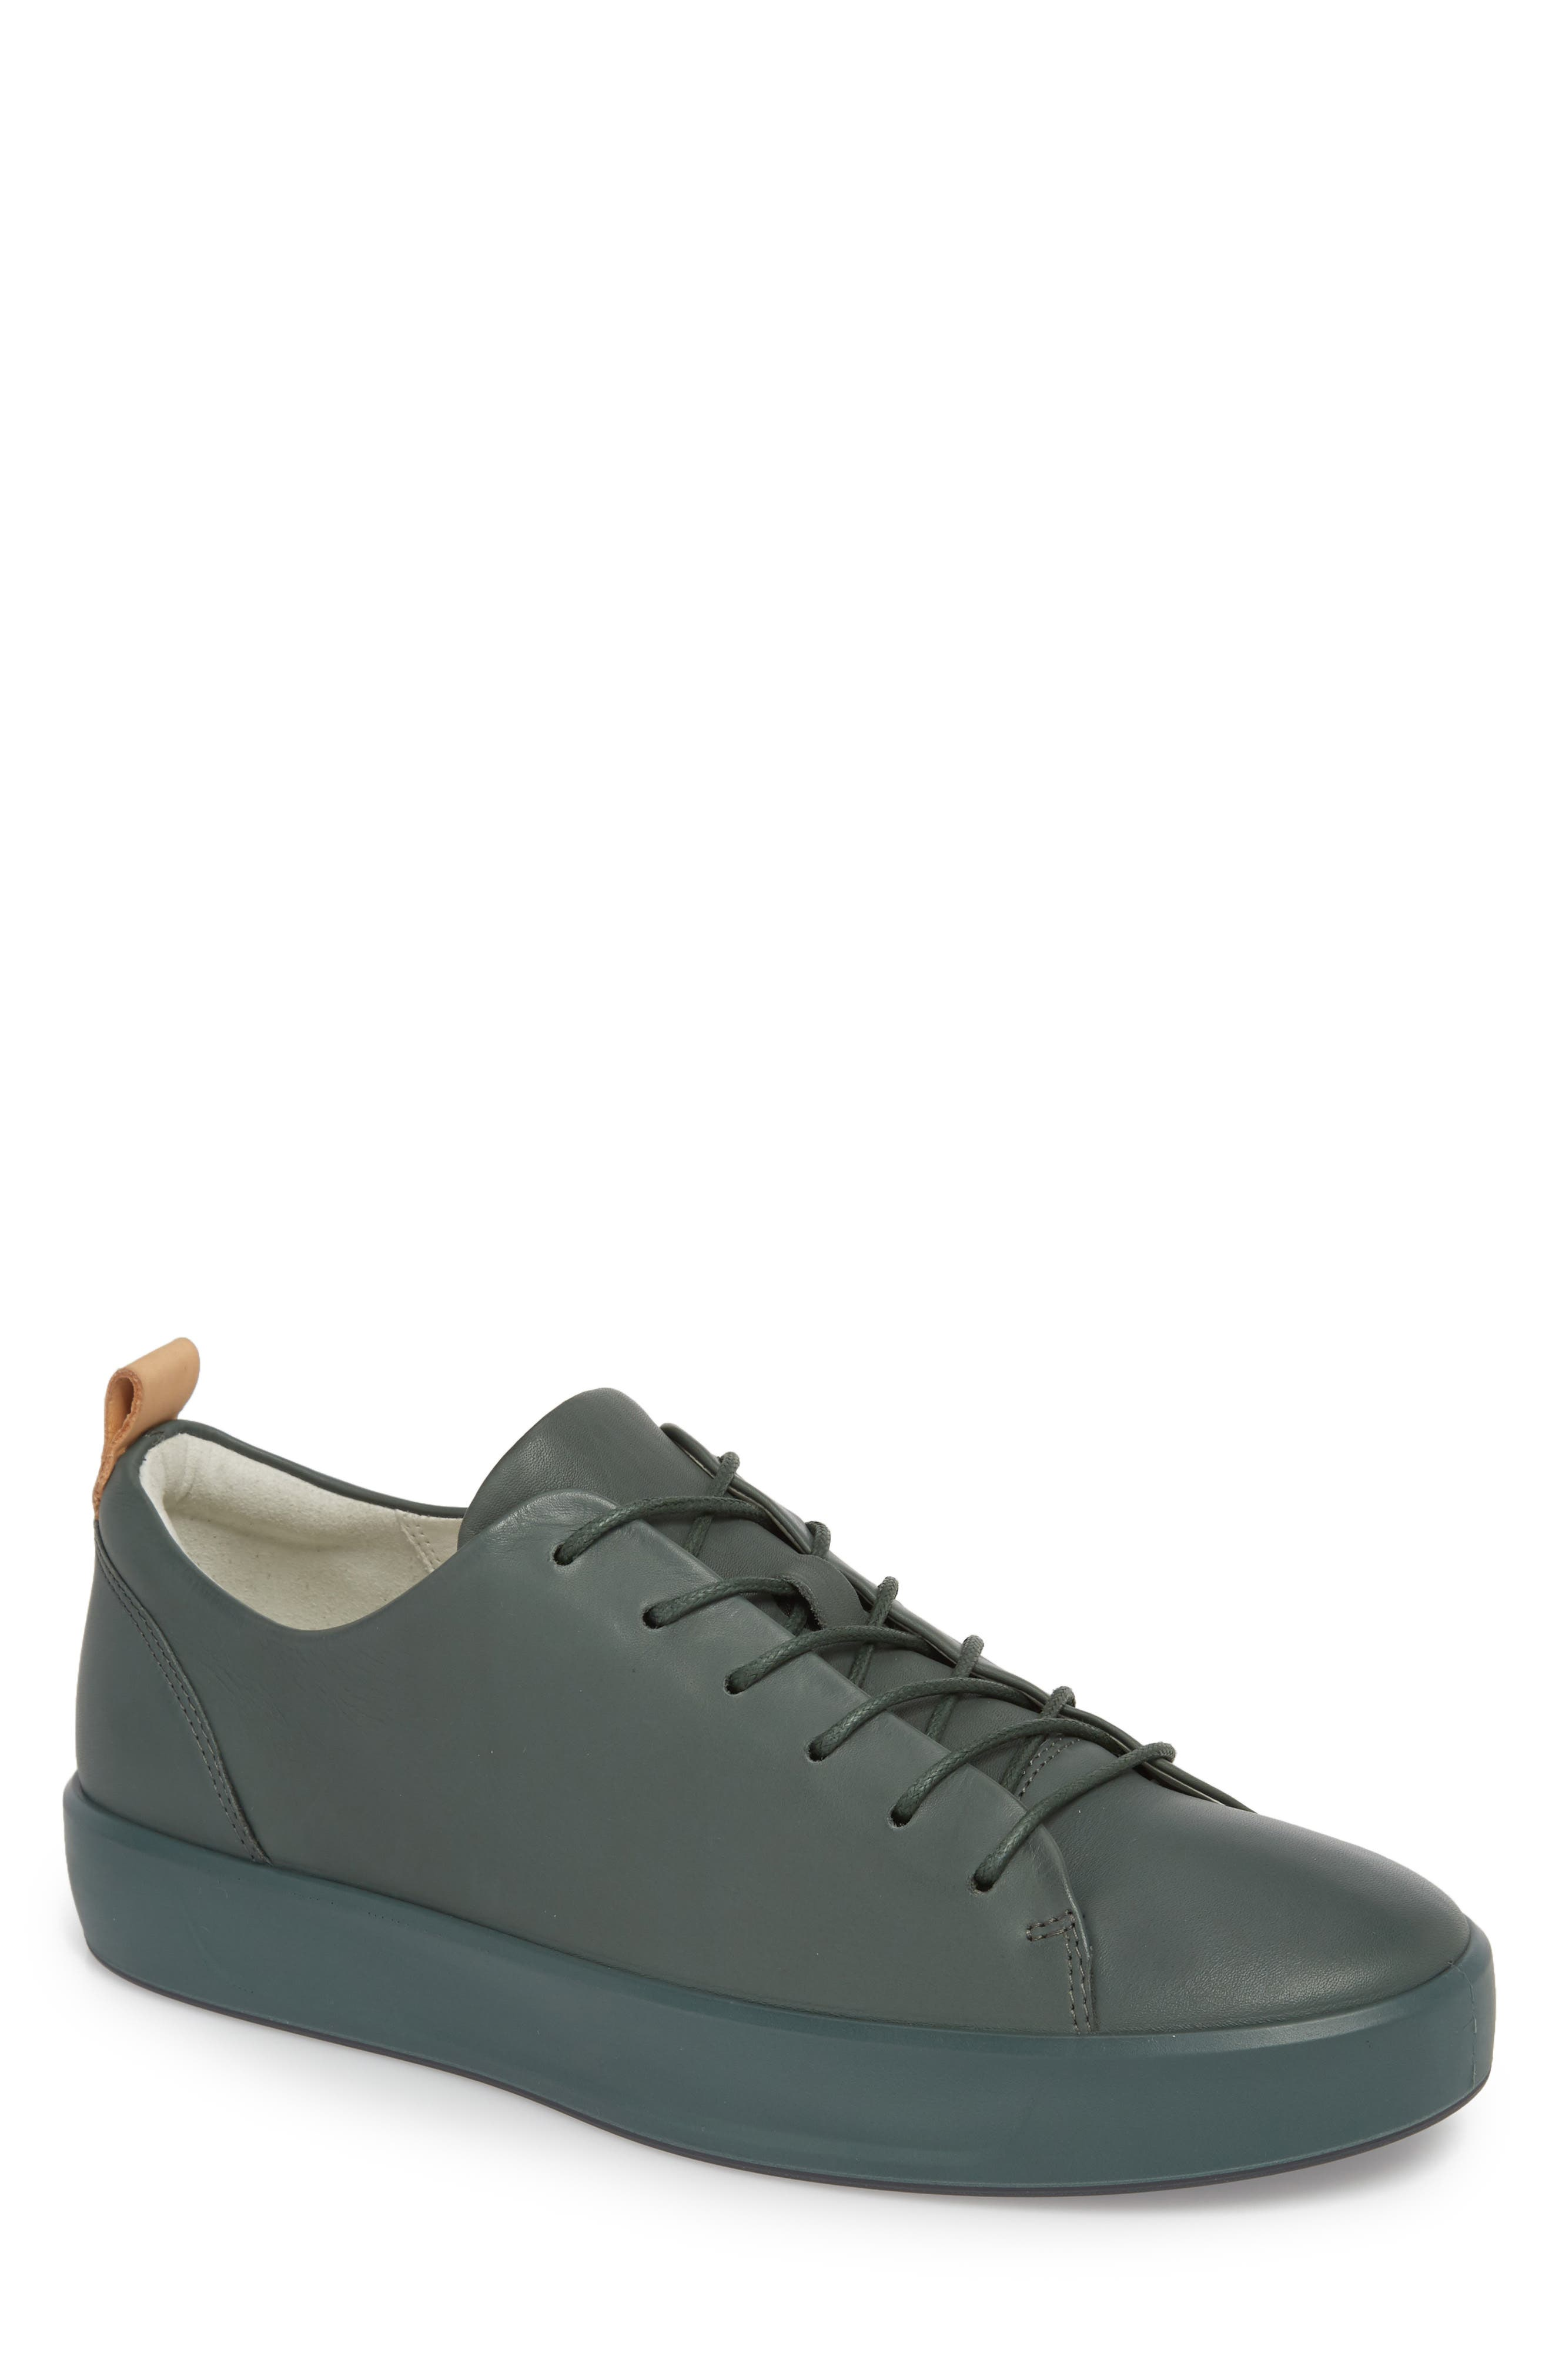 Soft 8 Low Top Sneaker,                         Main,                         color, Military Sage Leather